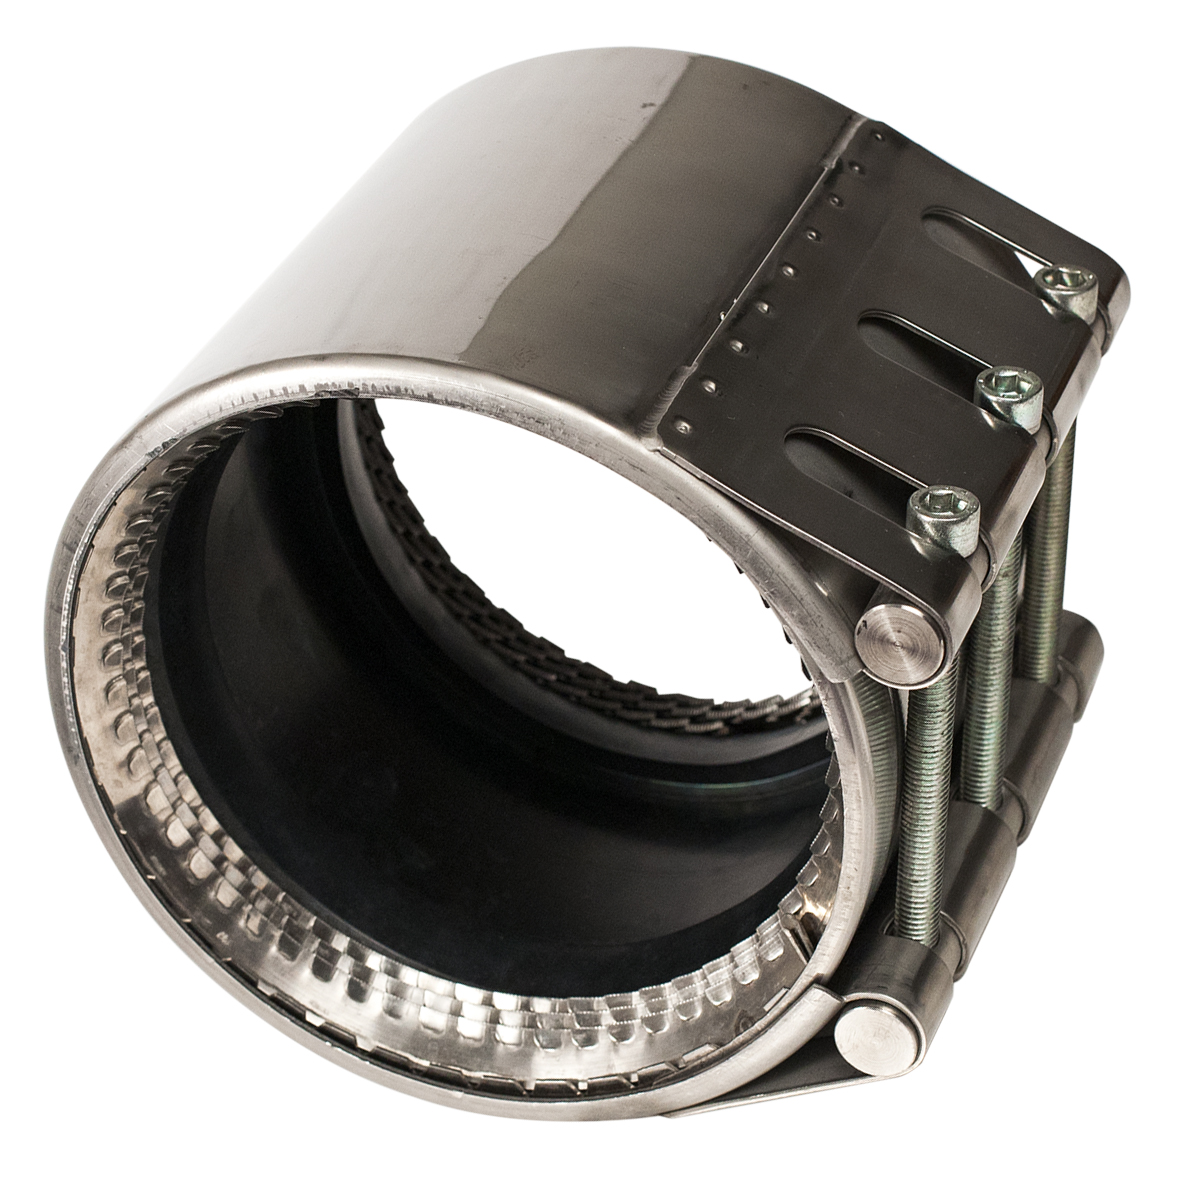 ARMOR SEAL - Stainless steel repair clamp that can also be used as a coupling